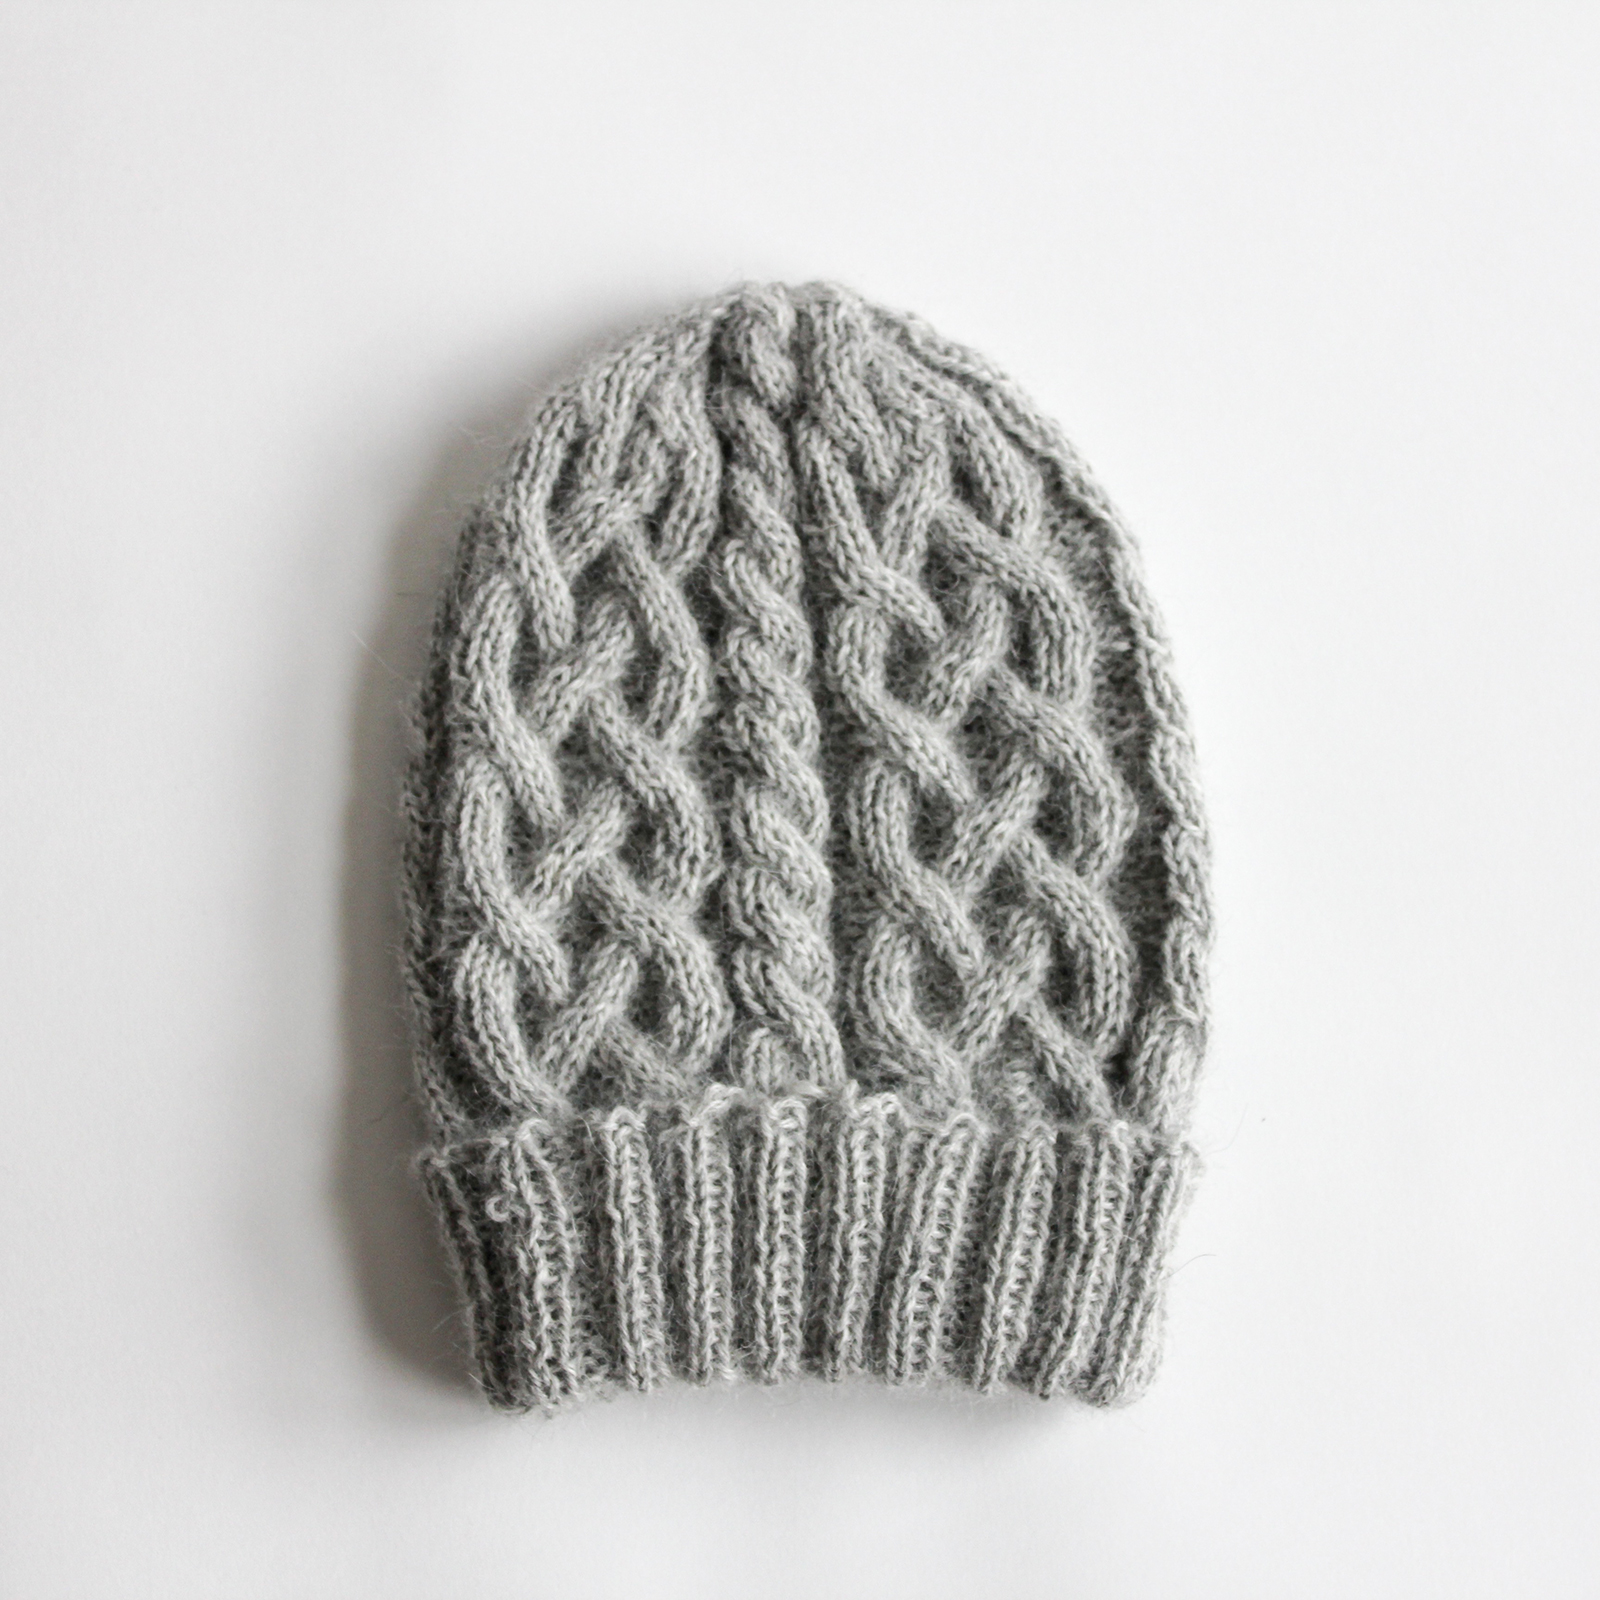 Knitting Pattern Cable Hat Easy : Cable knit hat   Kevin Bickham